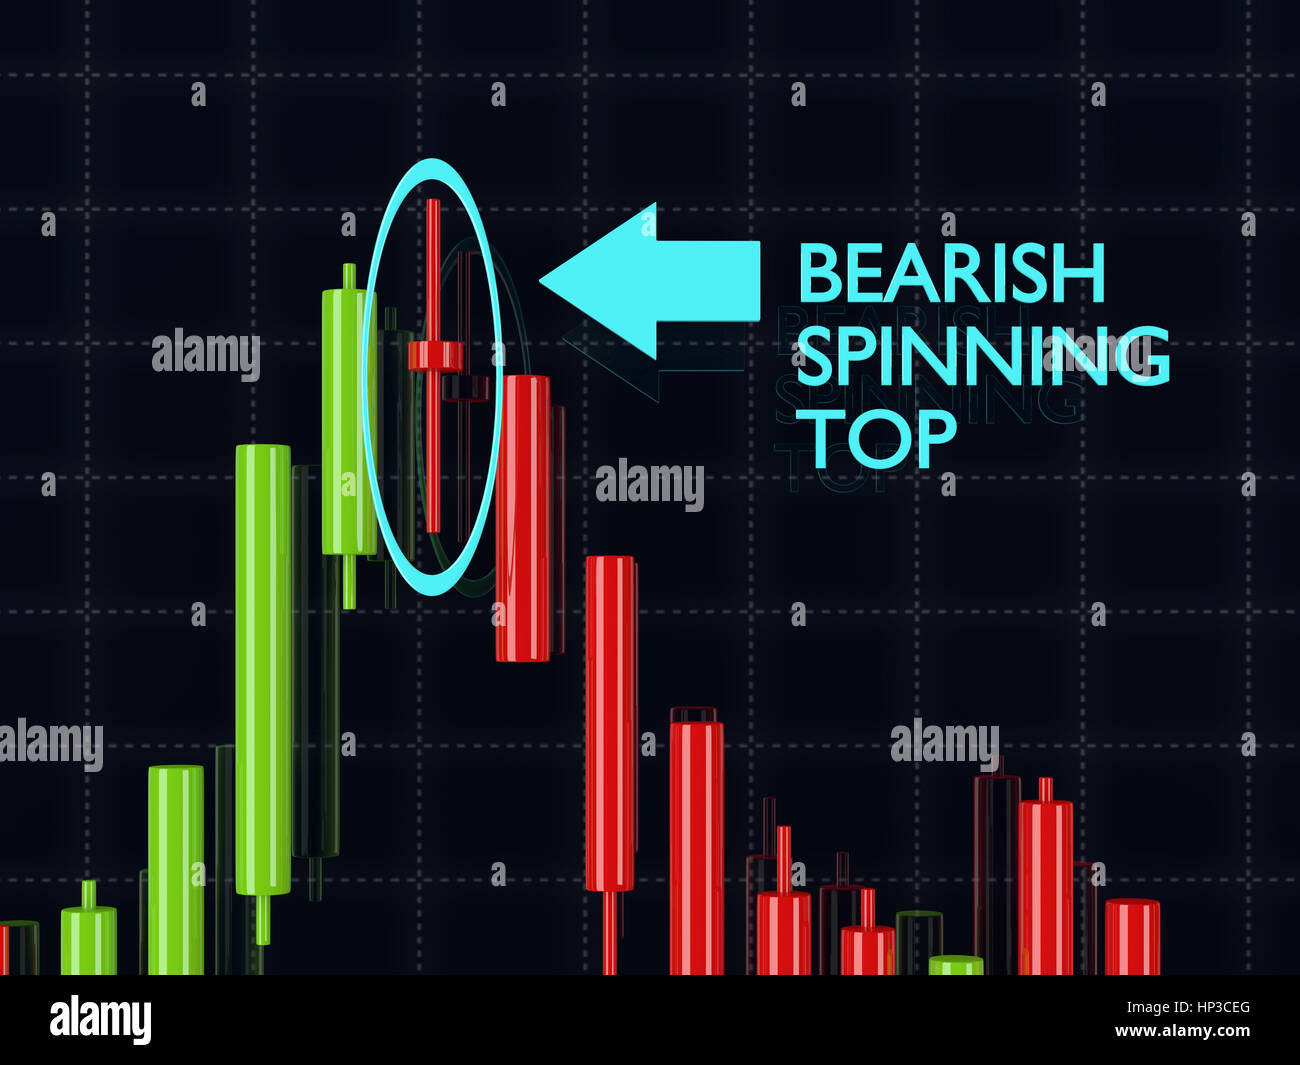 3d rendering of forex bearish spinning top candlestick  pattern over dark background - Stock Image